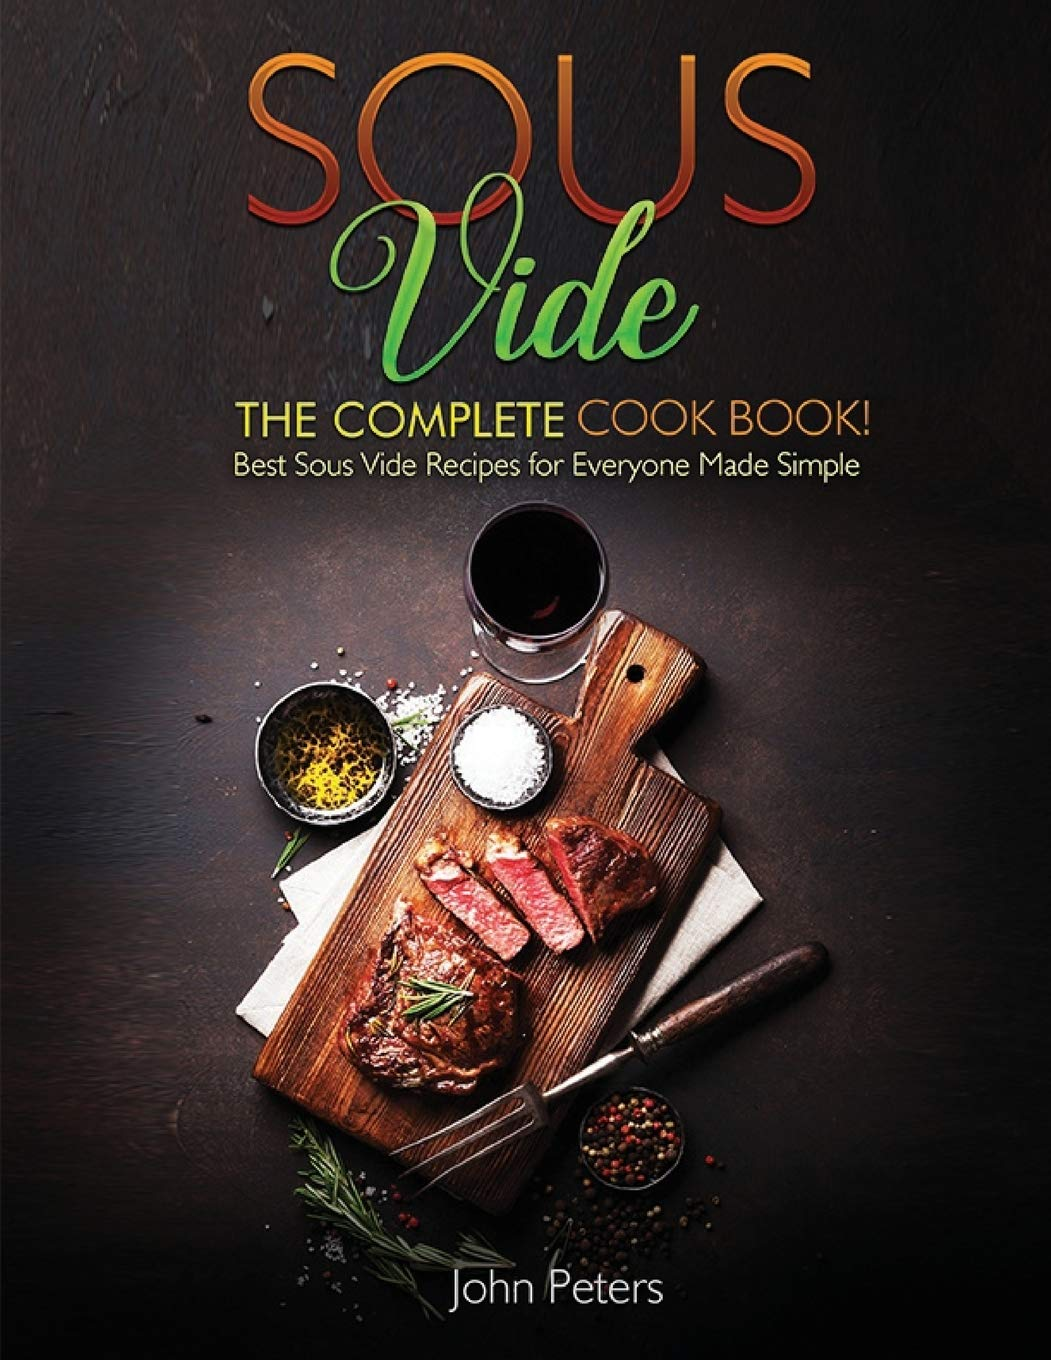 Download Sous Vide: The Complete Cookbook! Best Sous Vide Recipes For Everyone Made Simple